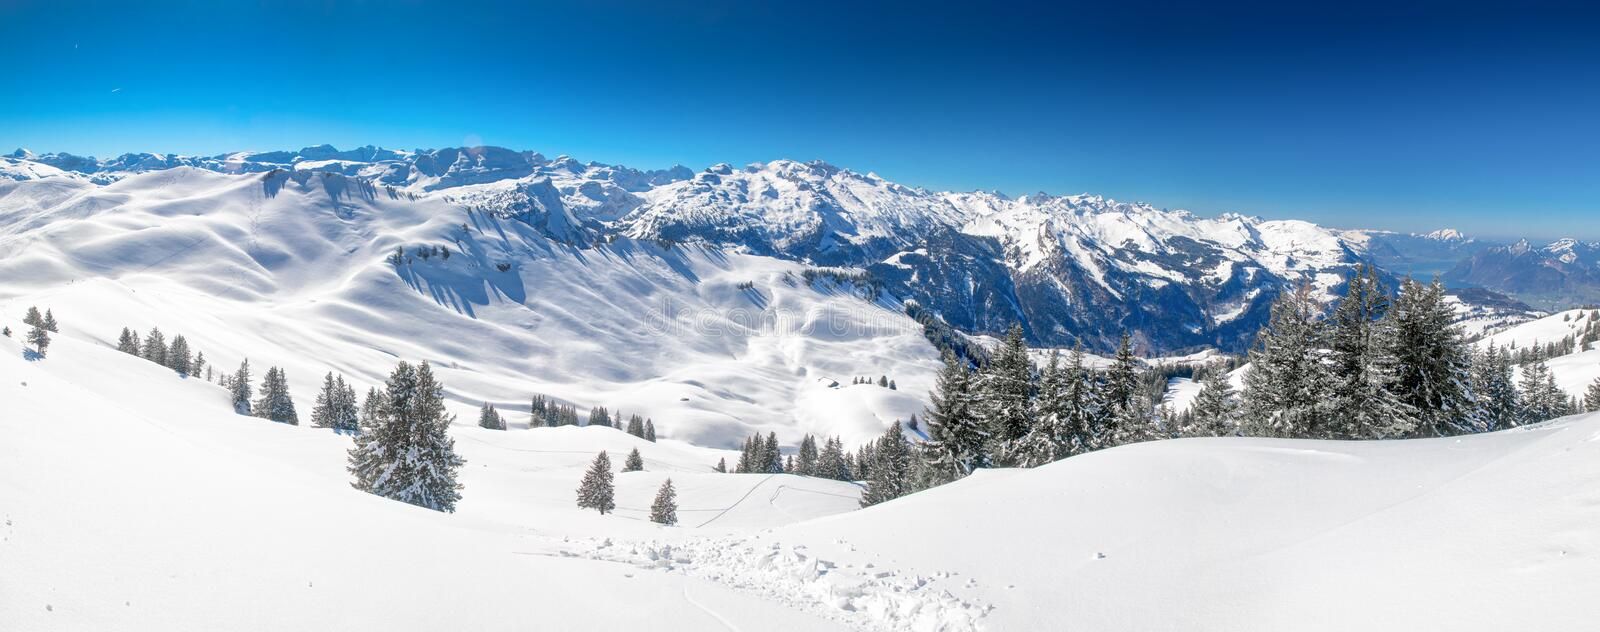 Swiss Alps covered by fresh new snow seen from Hoch-Ybrig ski resort, Central Switzerland royalty free stock photos